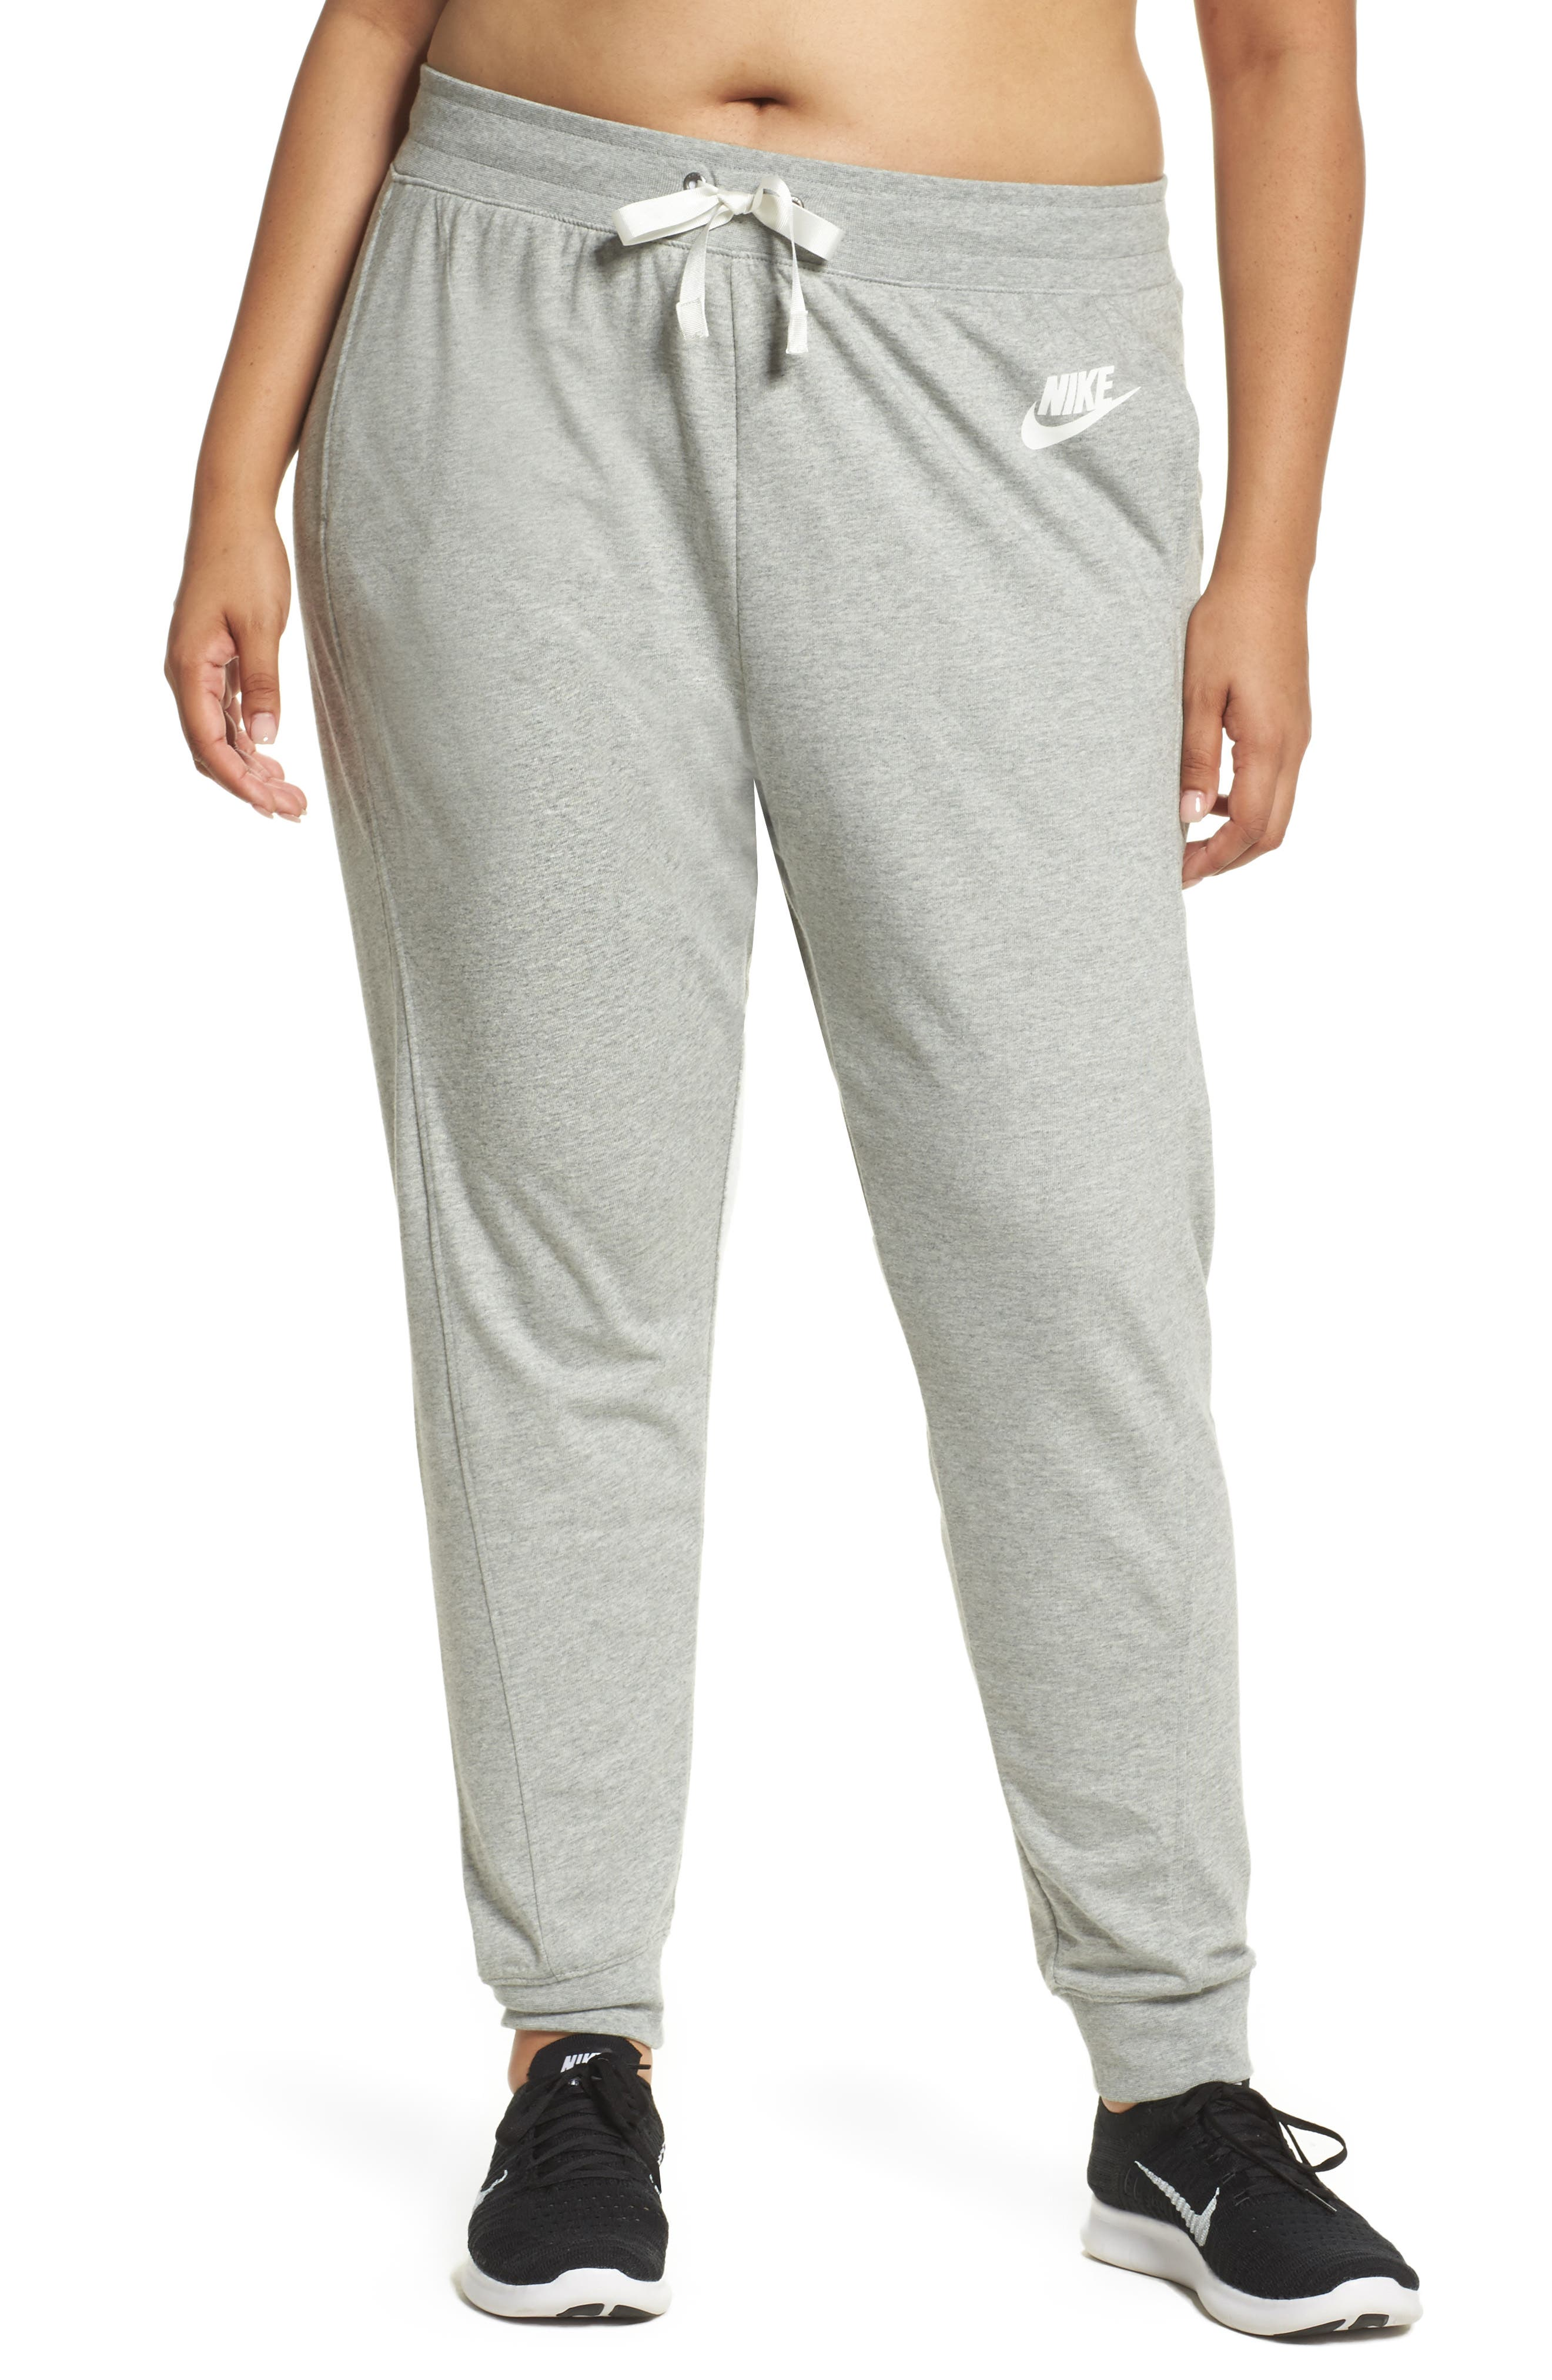 Alternate Image 1 Selected - Nike Sportswear Gym Classic Pants (Plus Size)